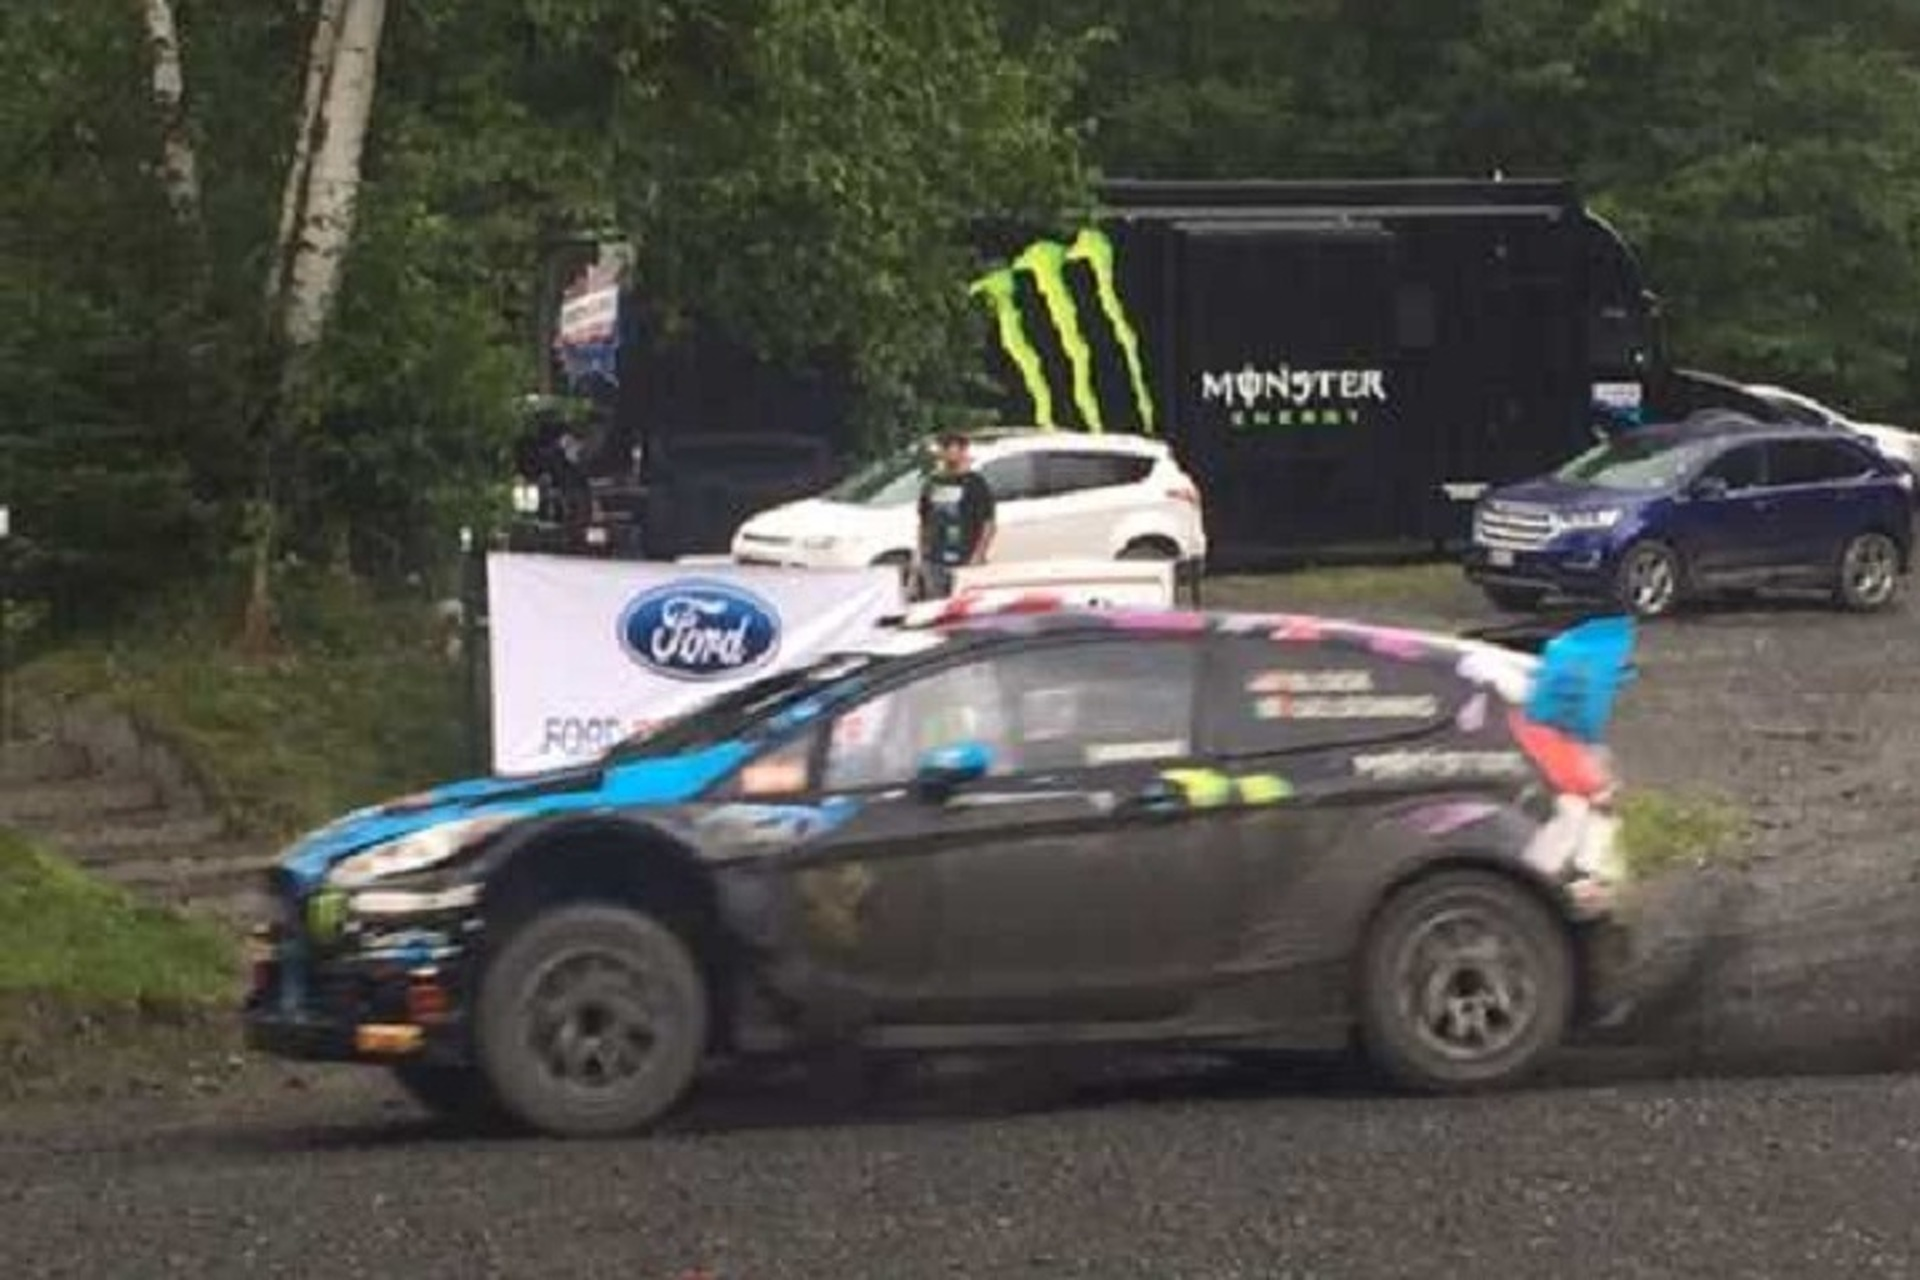 Buy Ken Block's Ford Fiesta Rally Car and Make Your Own Gymkhana